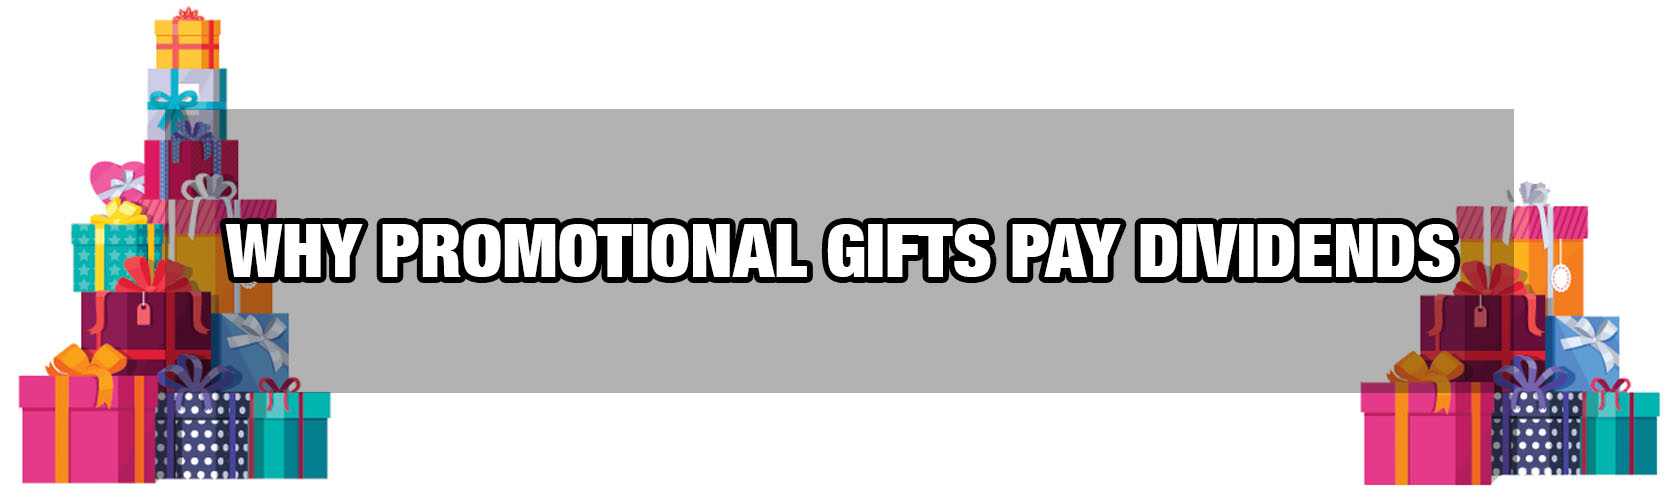 Why Promotional Gifts Pay Dividends